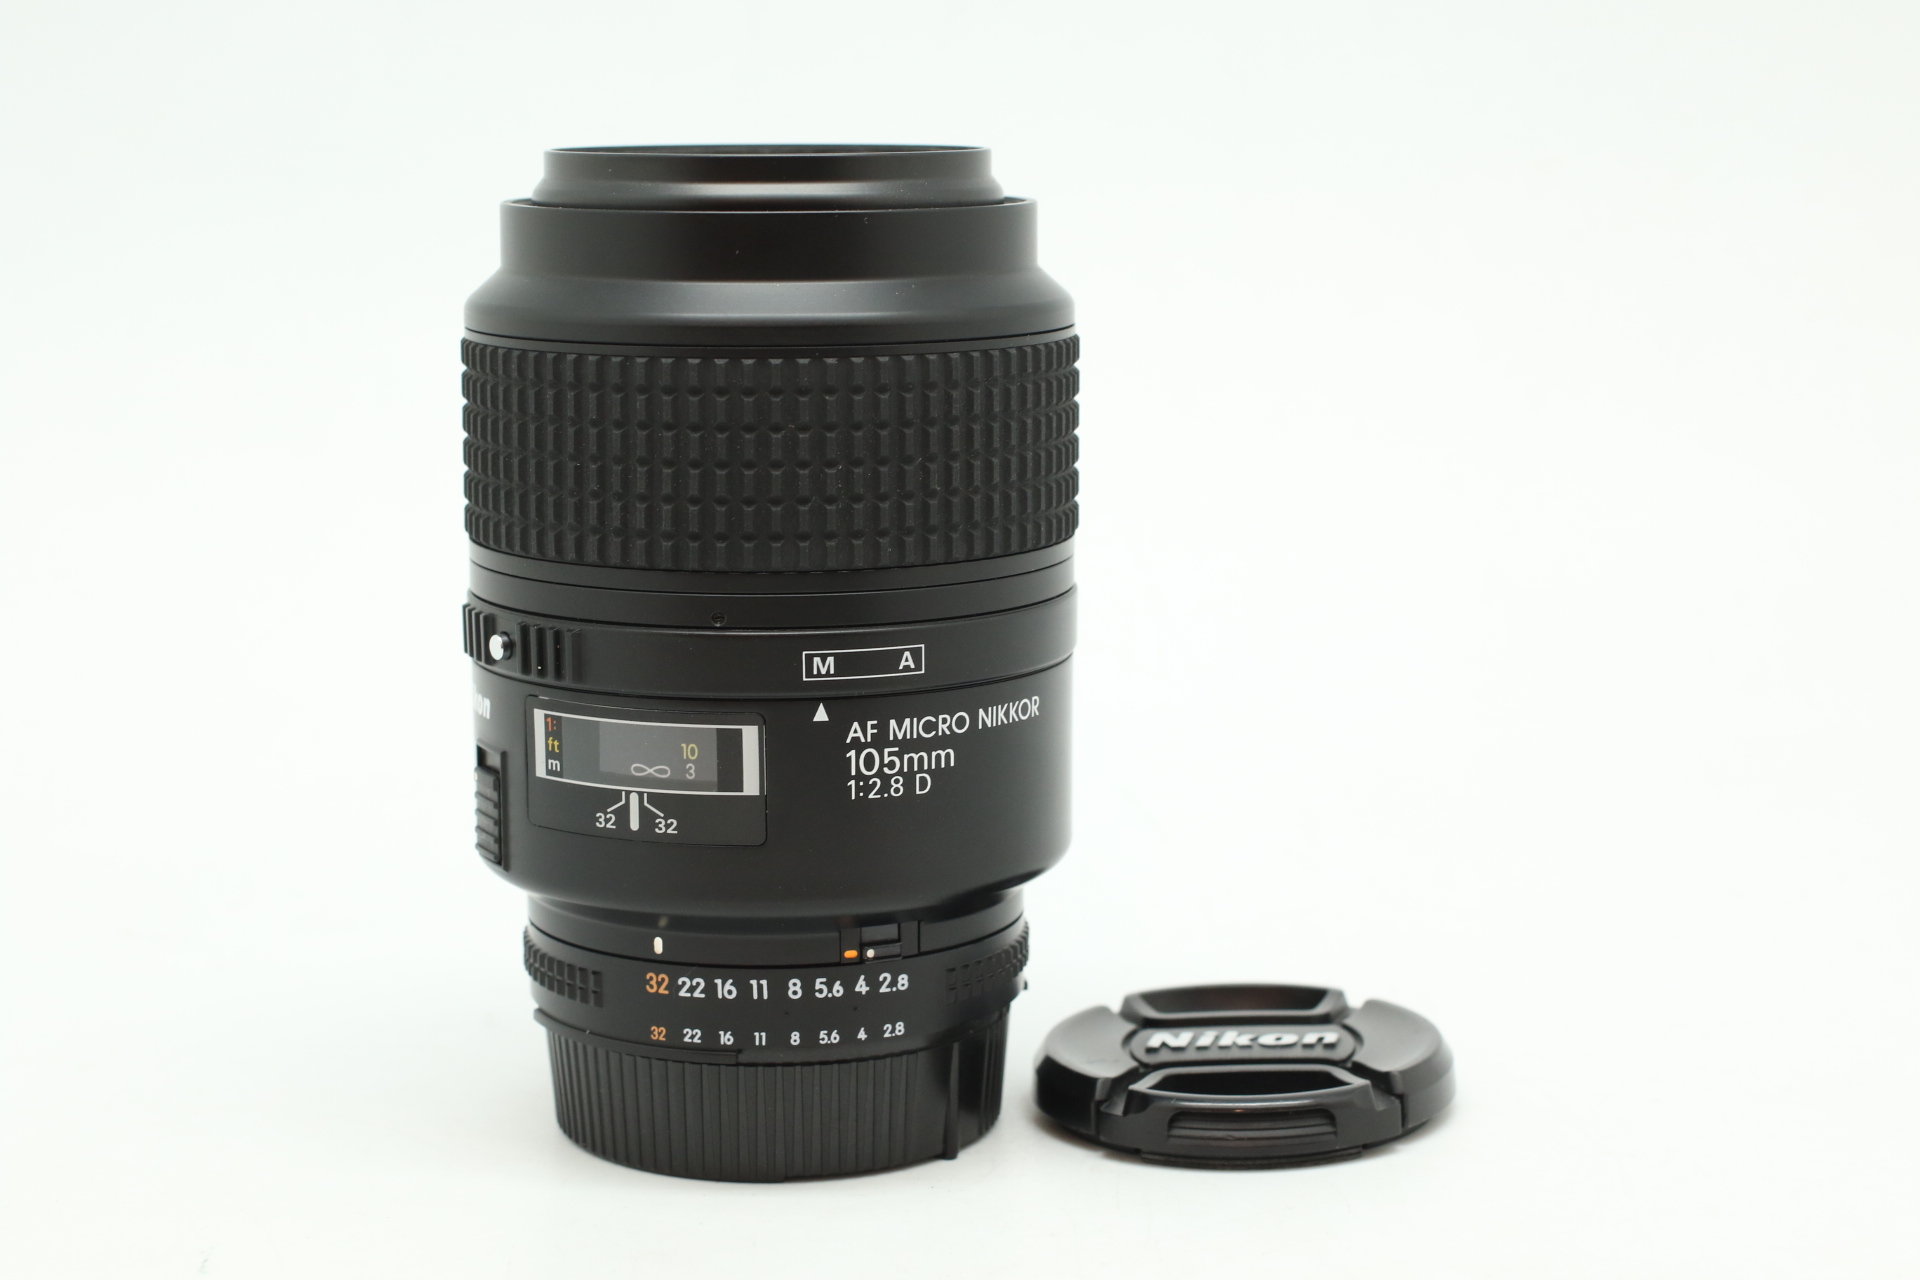 [USED-PUDU] NIKON 105MM F2.8 AFD MICRO LENS 90%LIKE NEW CONDITION SN:3356140